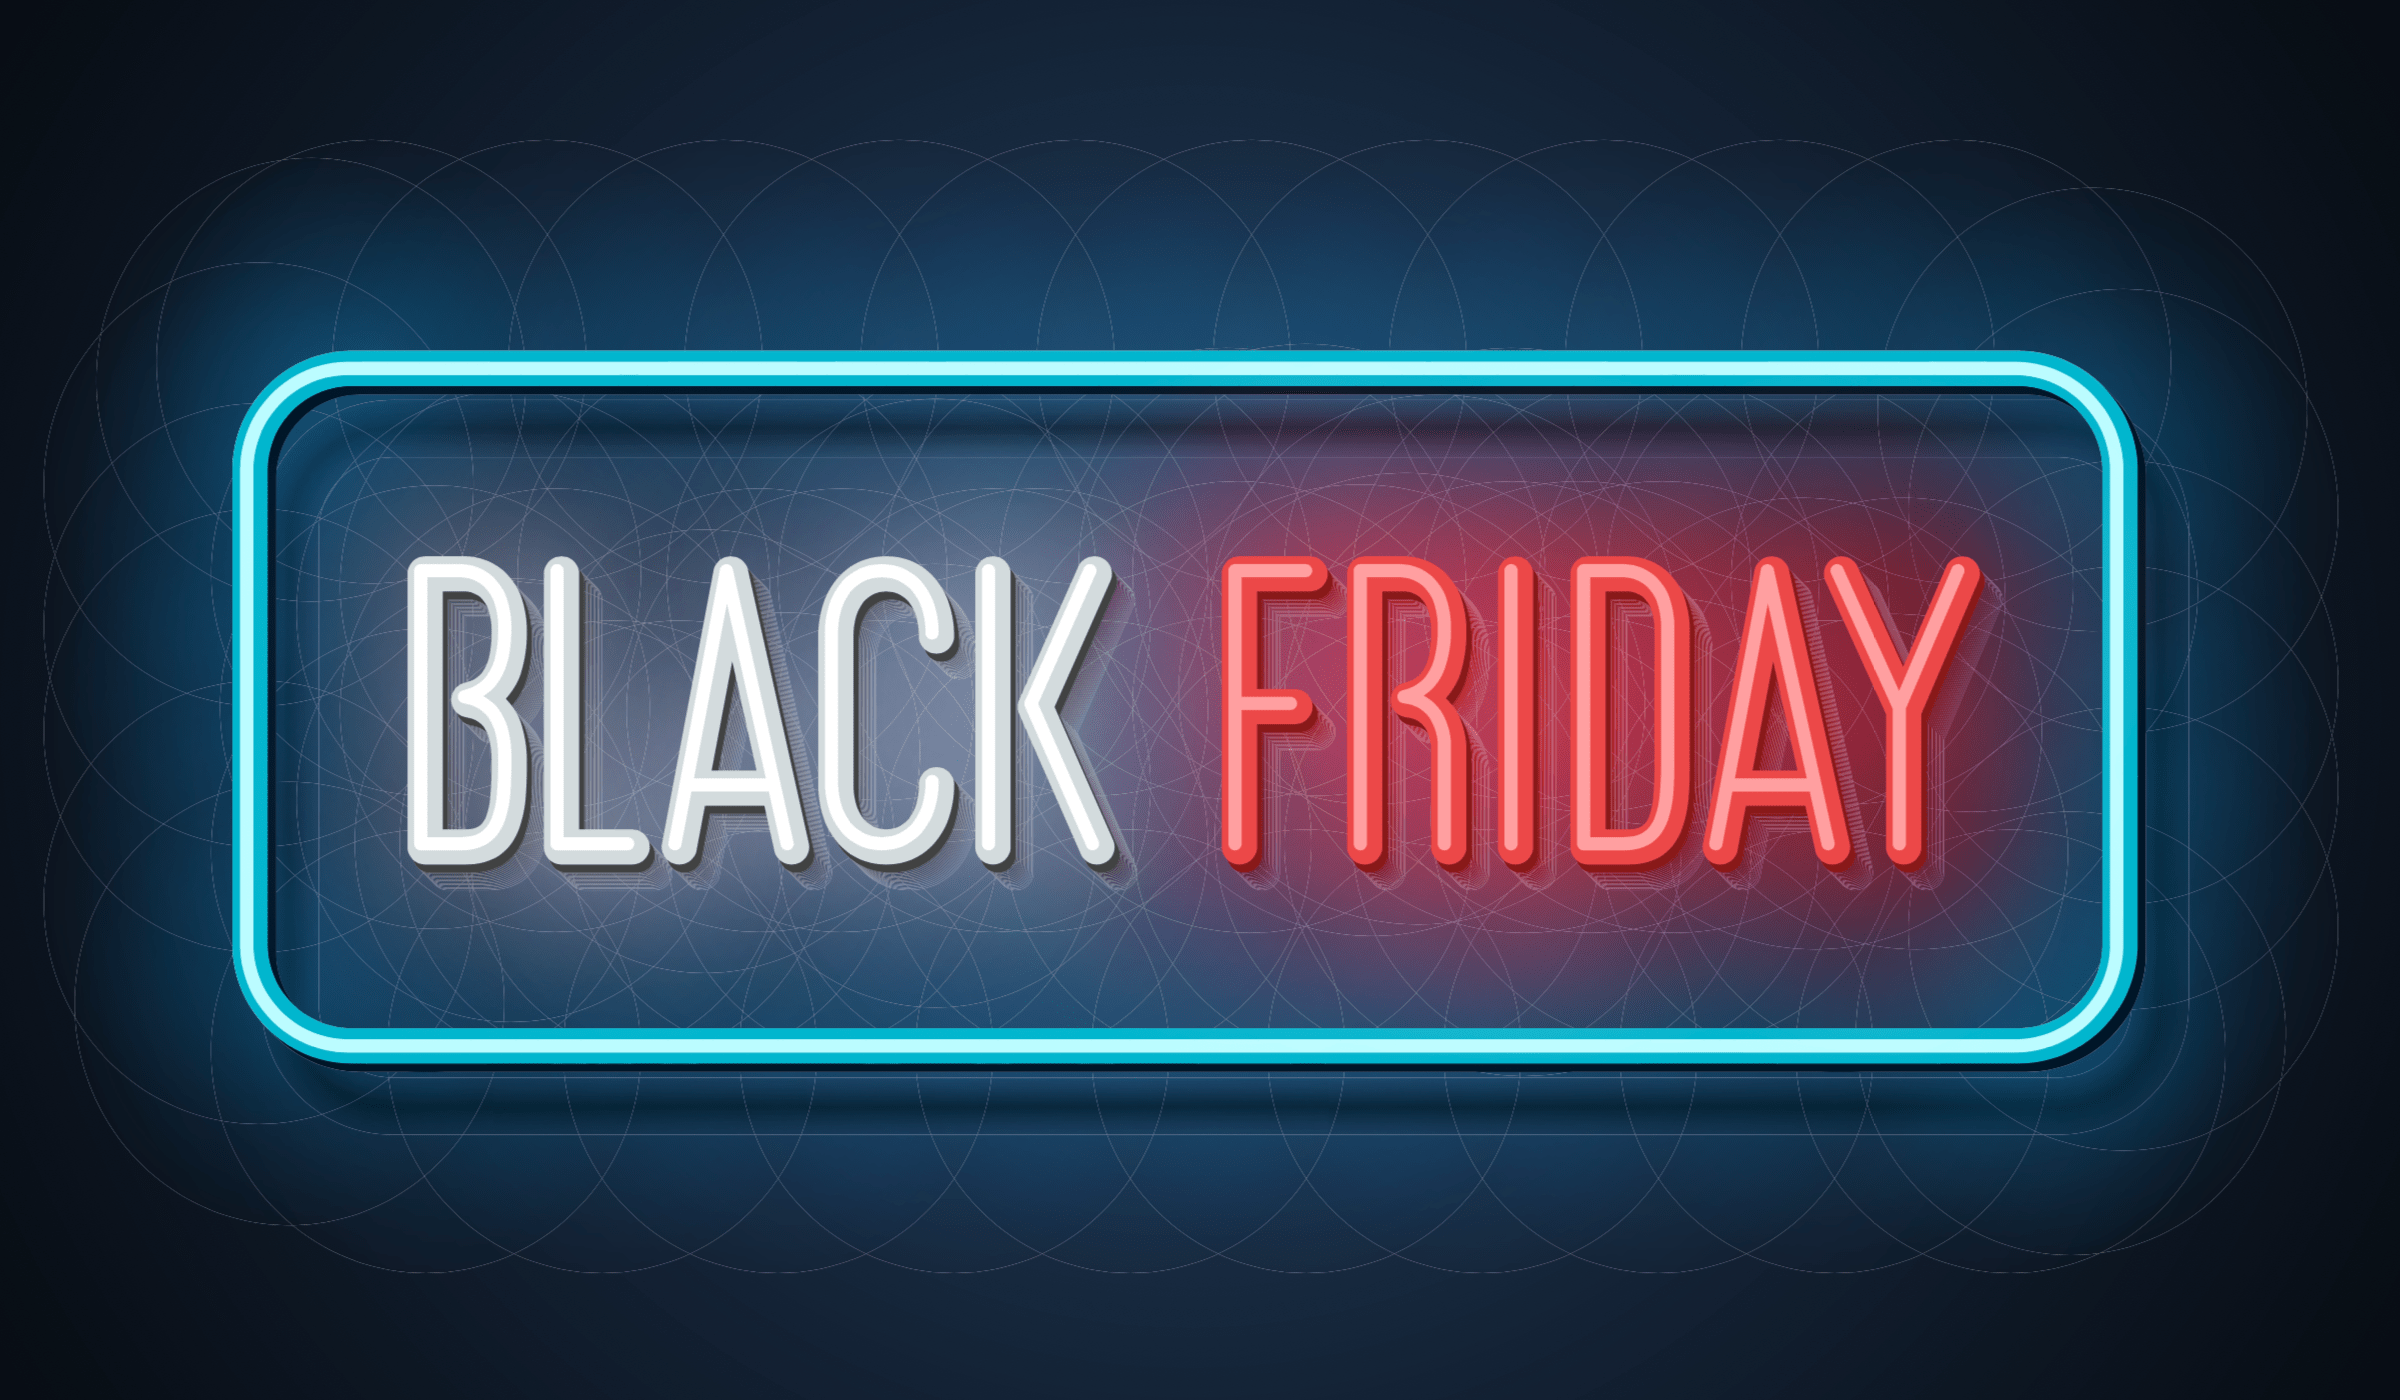 Black Friday Top Deals The Top Black Friday Deals For Survivalists Outdoorhub